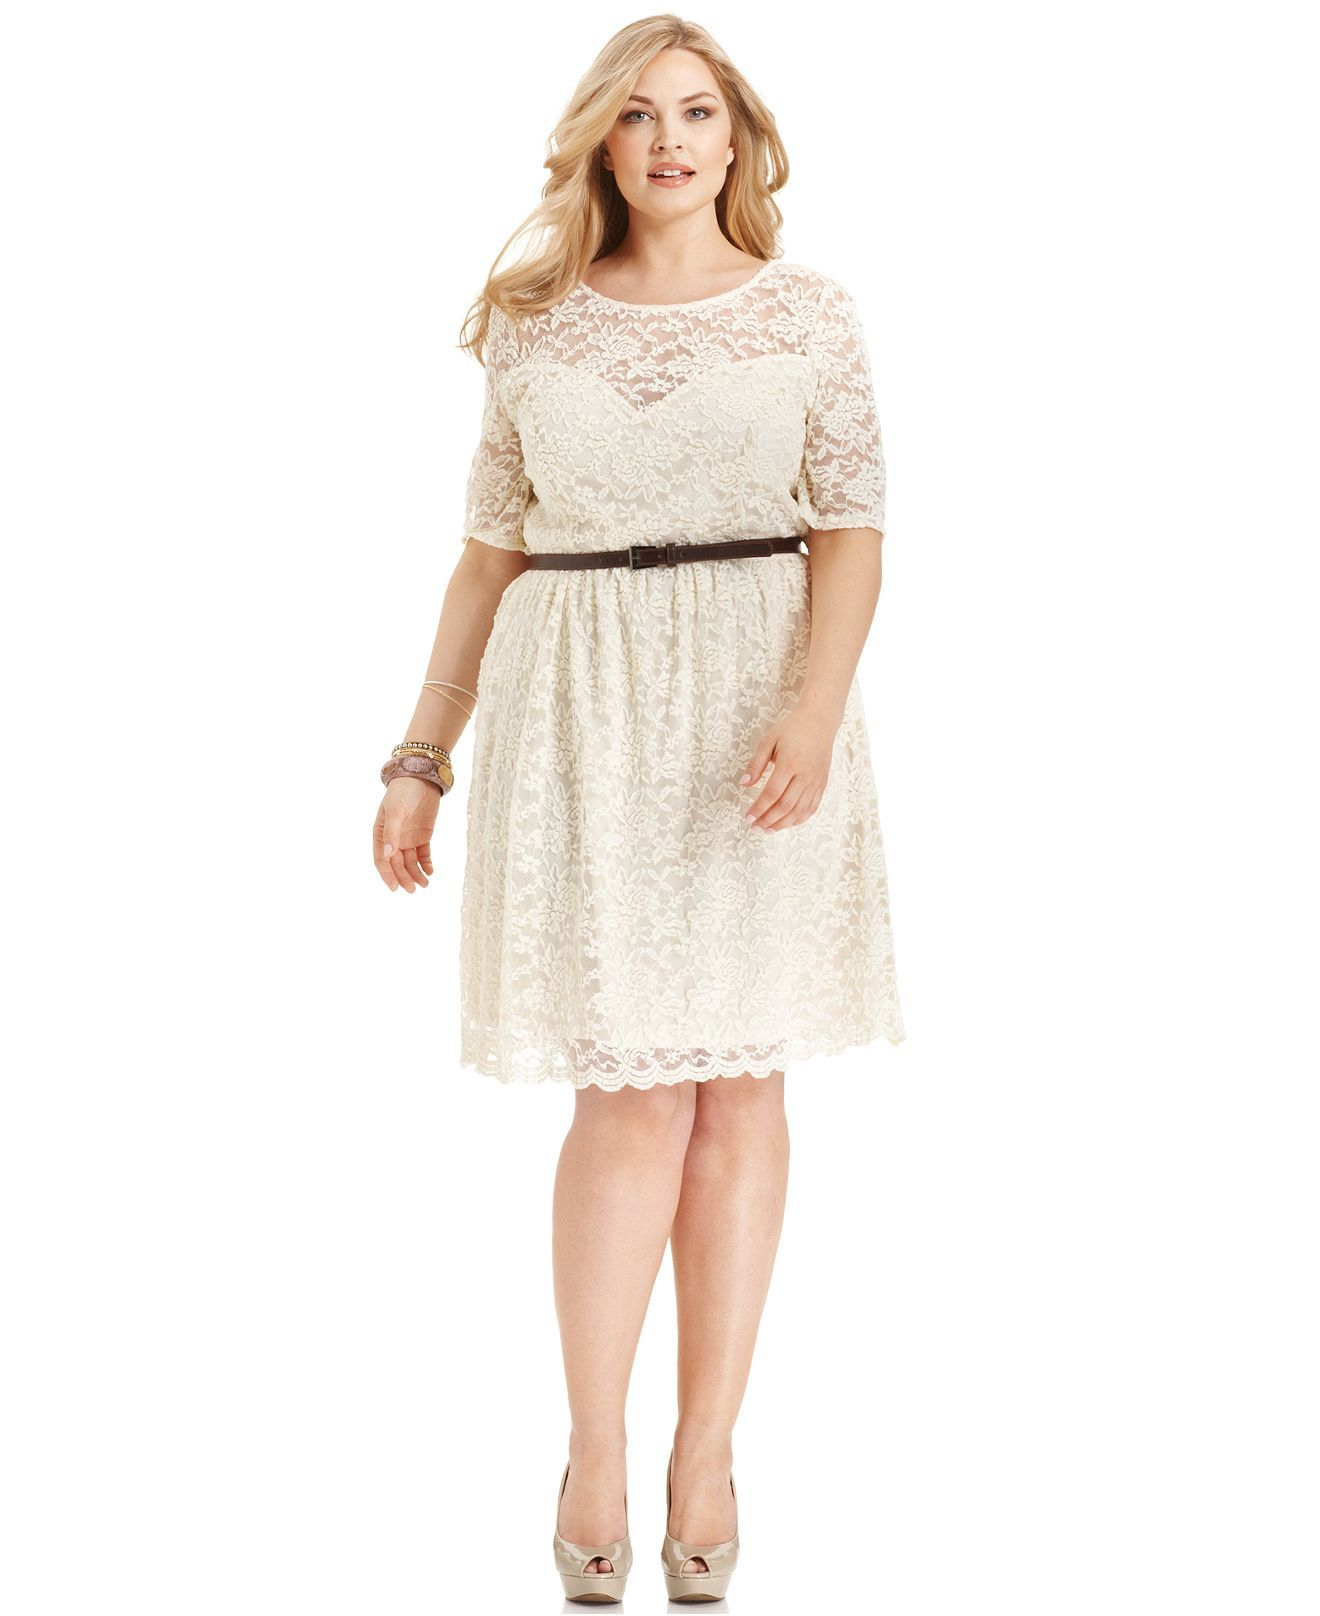 $59.00 American Rag Plus Size Dress, Short-Sleeve Lace Belted ...